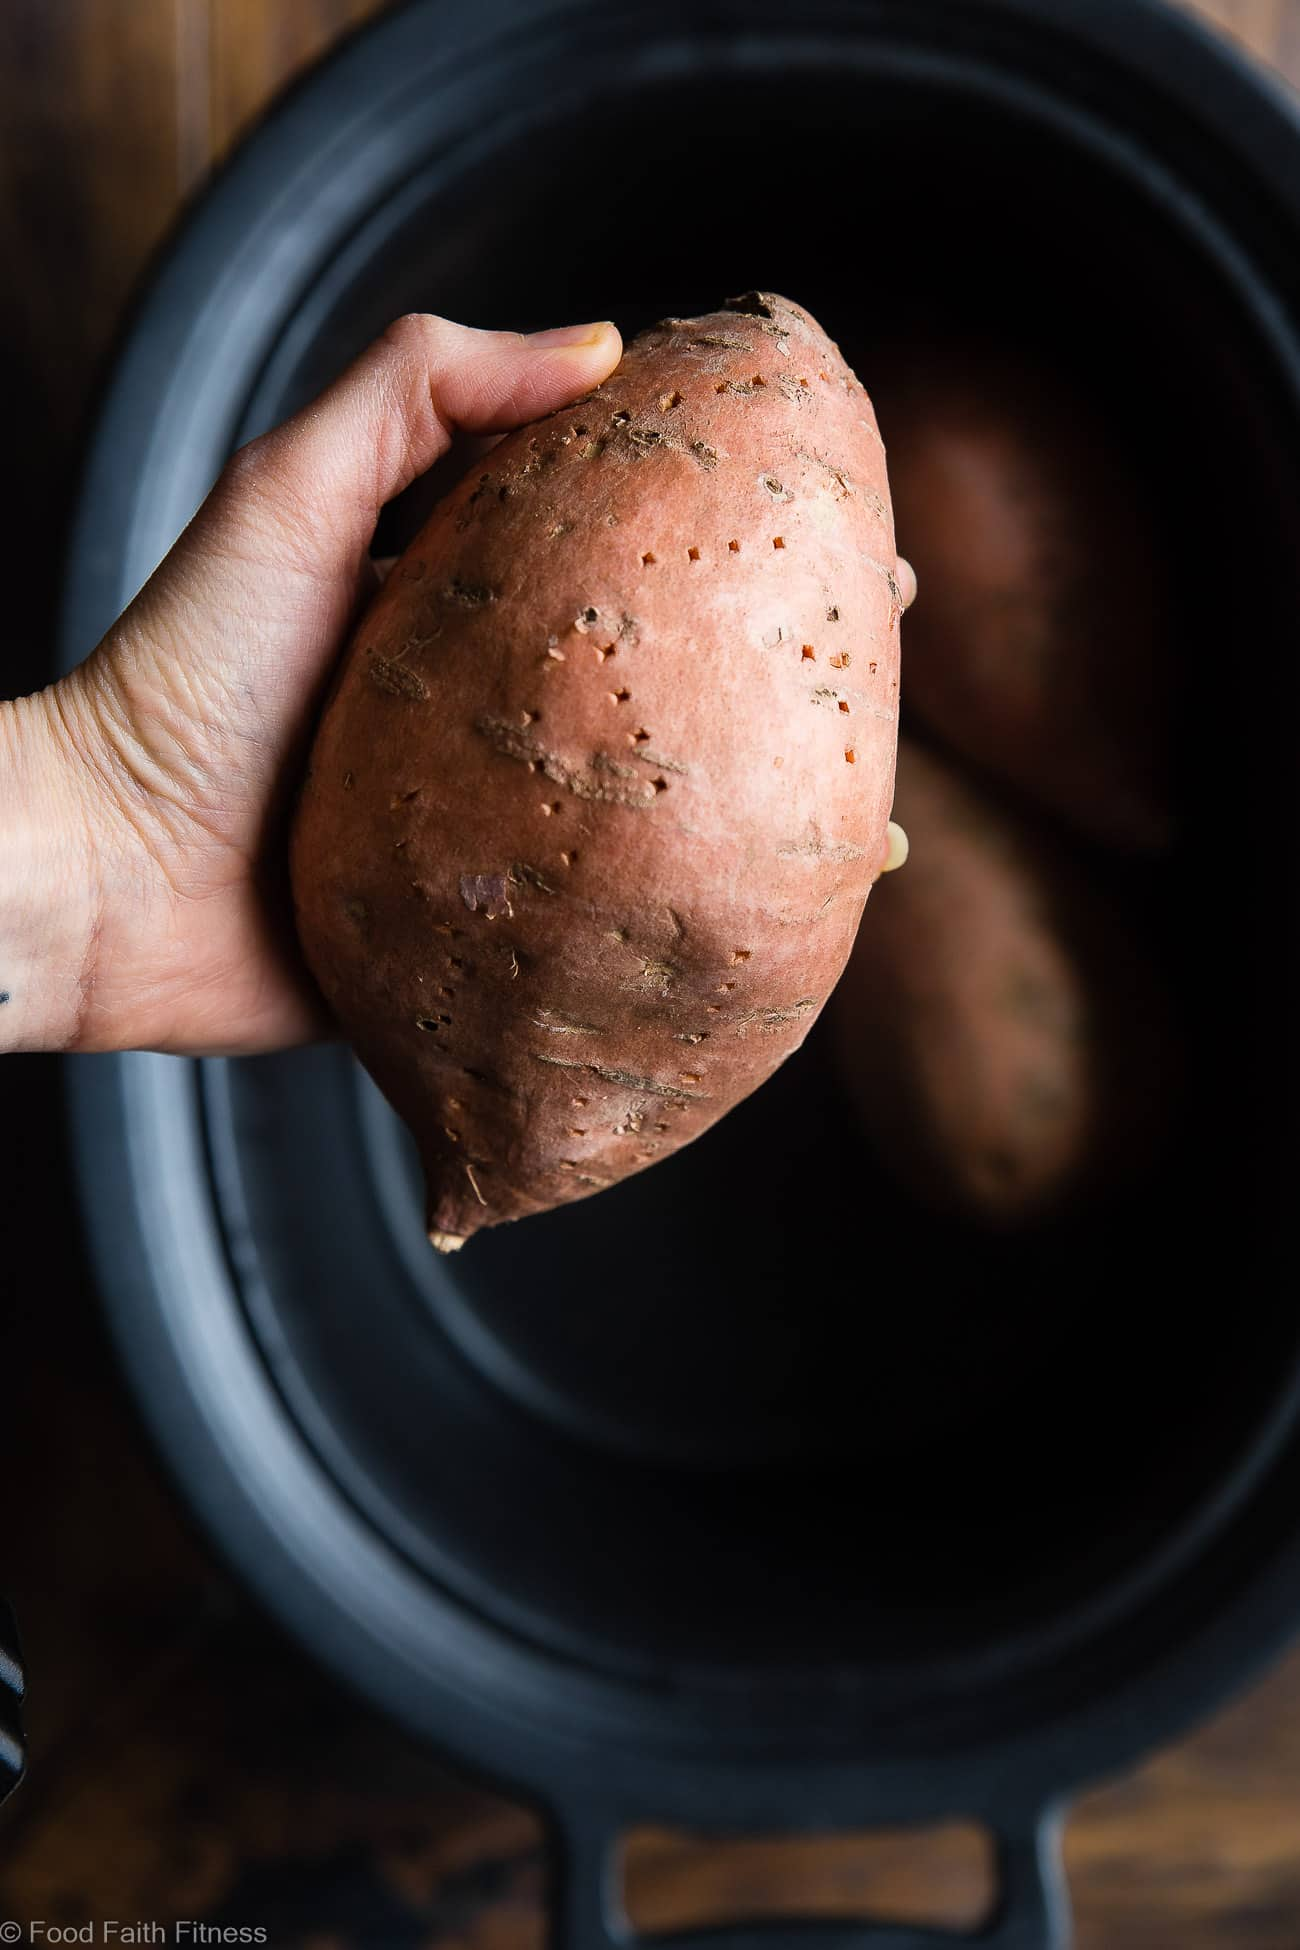 How to Cook Crock Pot Sweet Potatoes - Let the slow cooker do all the work for you! These sweet potatoes are SO easy and come out perfect EVERY TIME! A healthy, paleo, vegan and whole30 side dish! | #Foodfaithfitness | #Paleo #Glutenfree #Healthy #Slowcooker #Crockpot